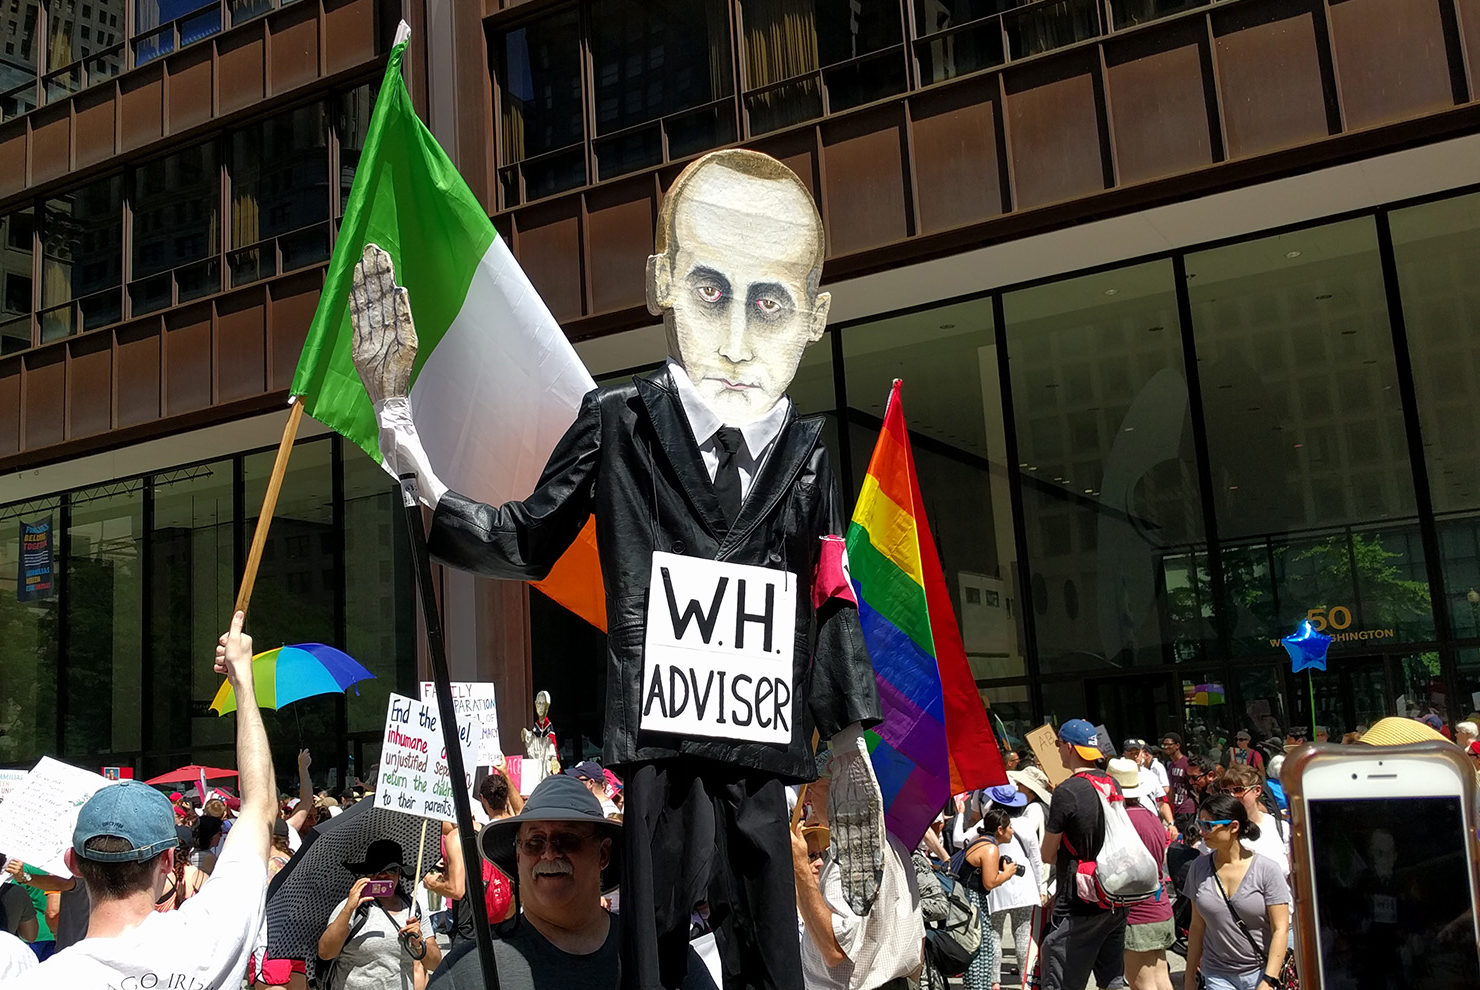 A man holds a sign depicting White House aide Stephen Miller as a Nazi official during a protest in Chicago on June 30, 2018. Will Racke/TheDCNF